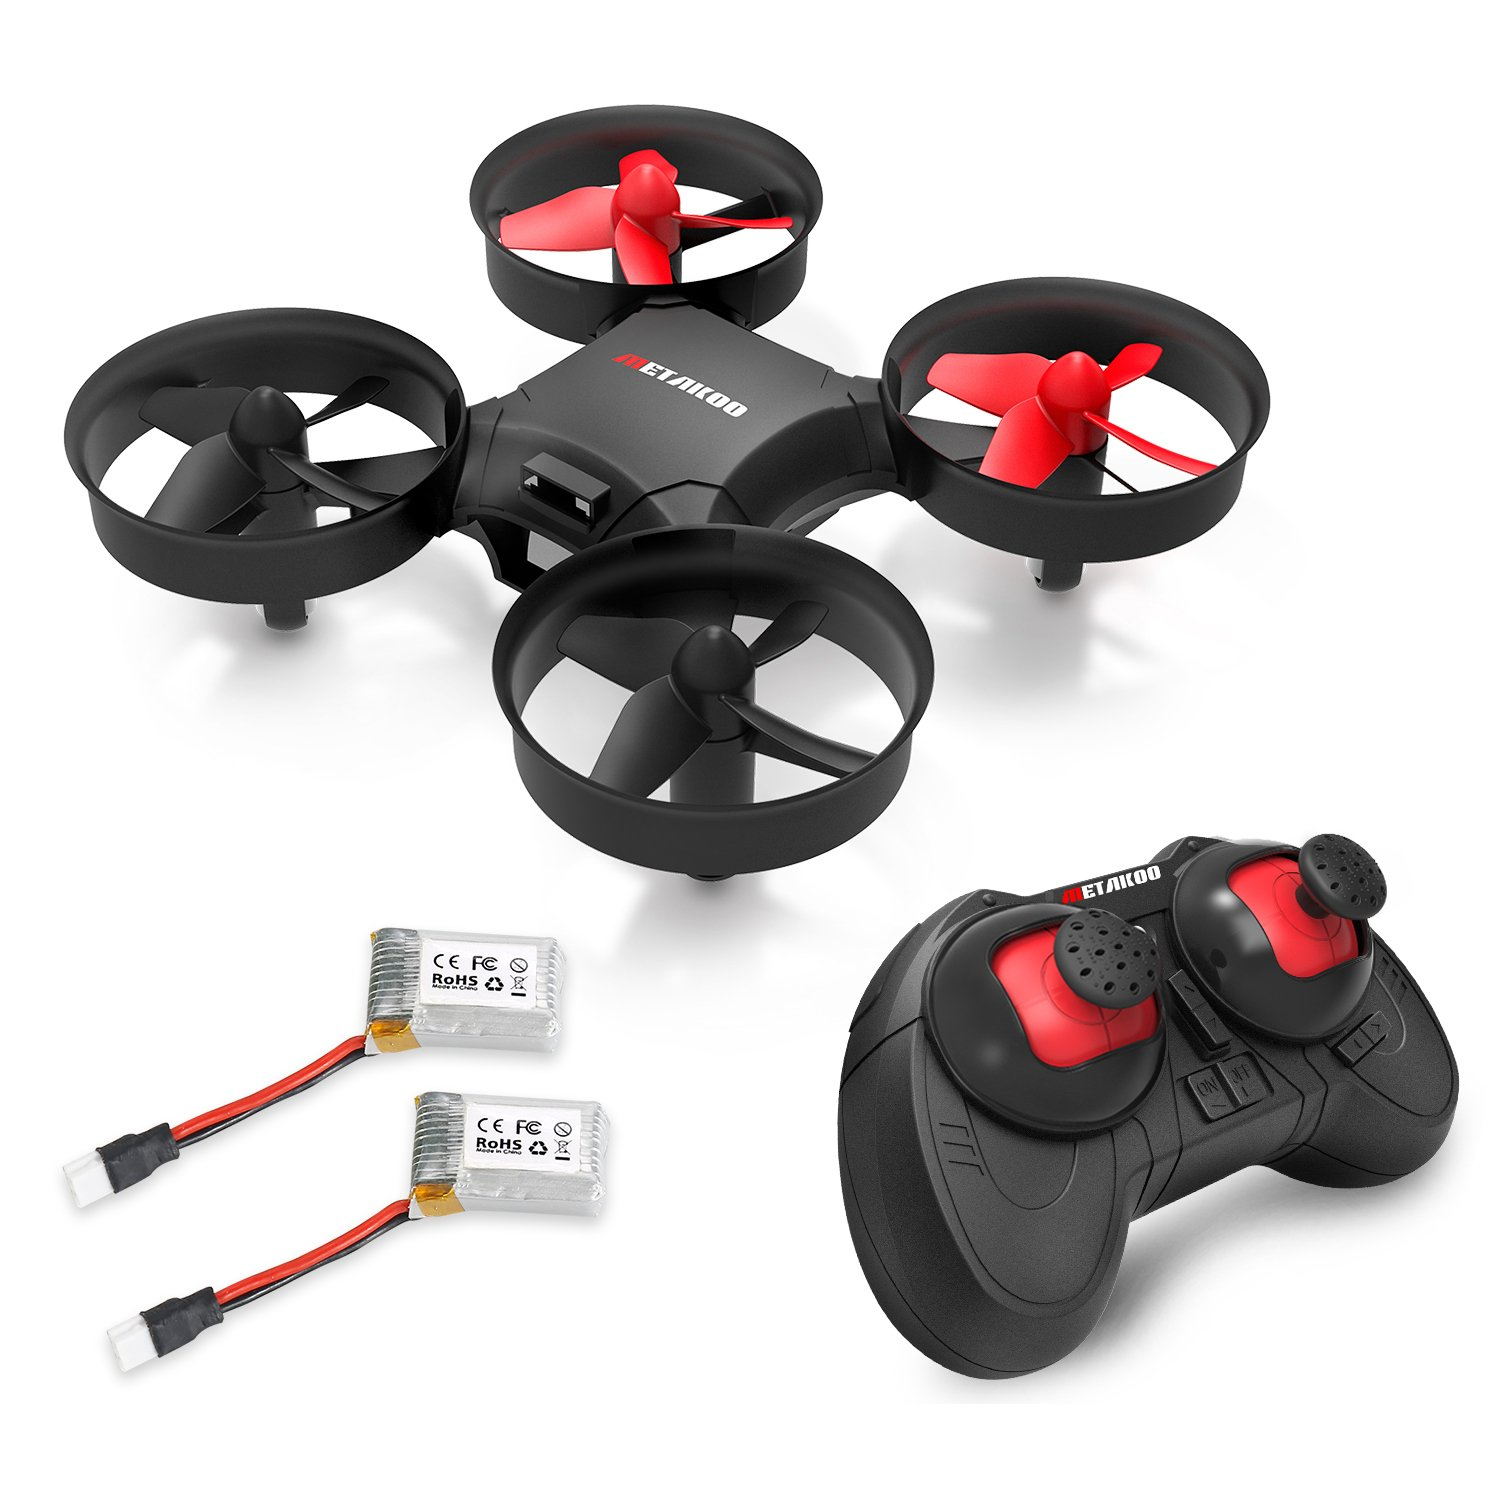 Drone, Metakoo M1 Mini Drone 2.4GHz 6-Axis Double Battery for Beginners and Kids Drone with 360°Full Protection, Altitude Hold, 3D Flips, Headless Mode, 3 Speed Modes Functions